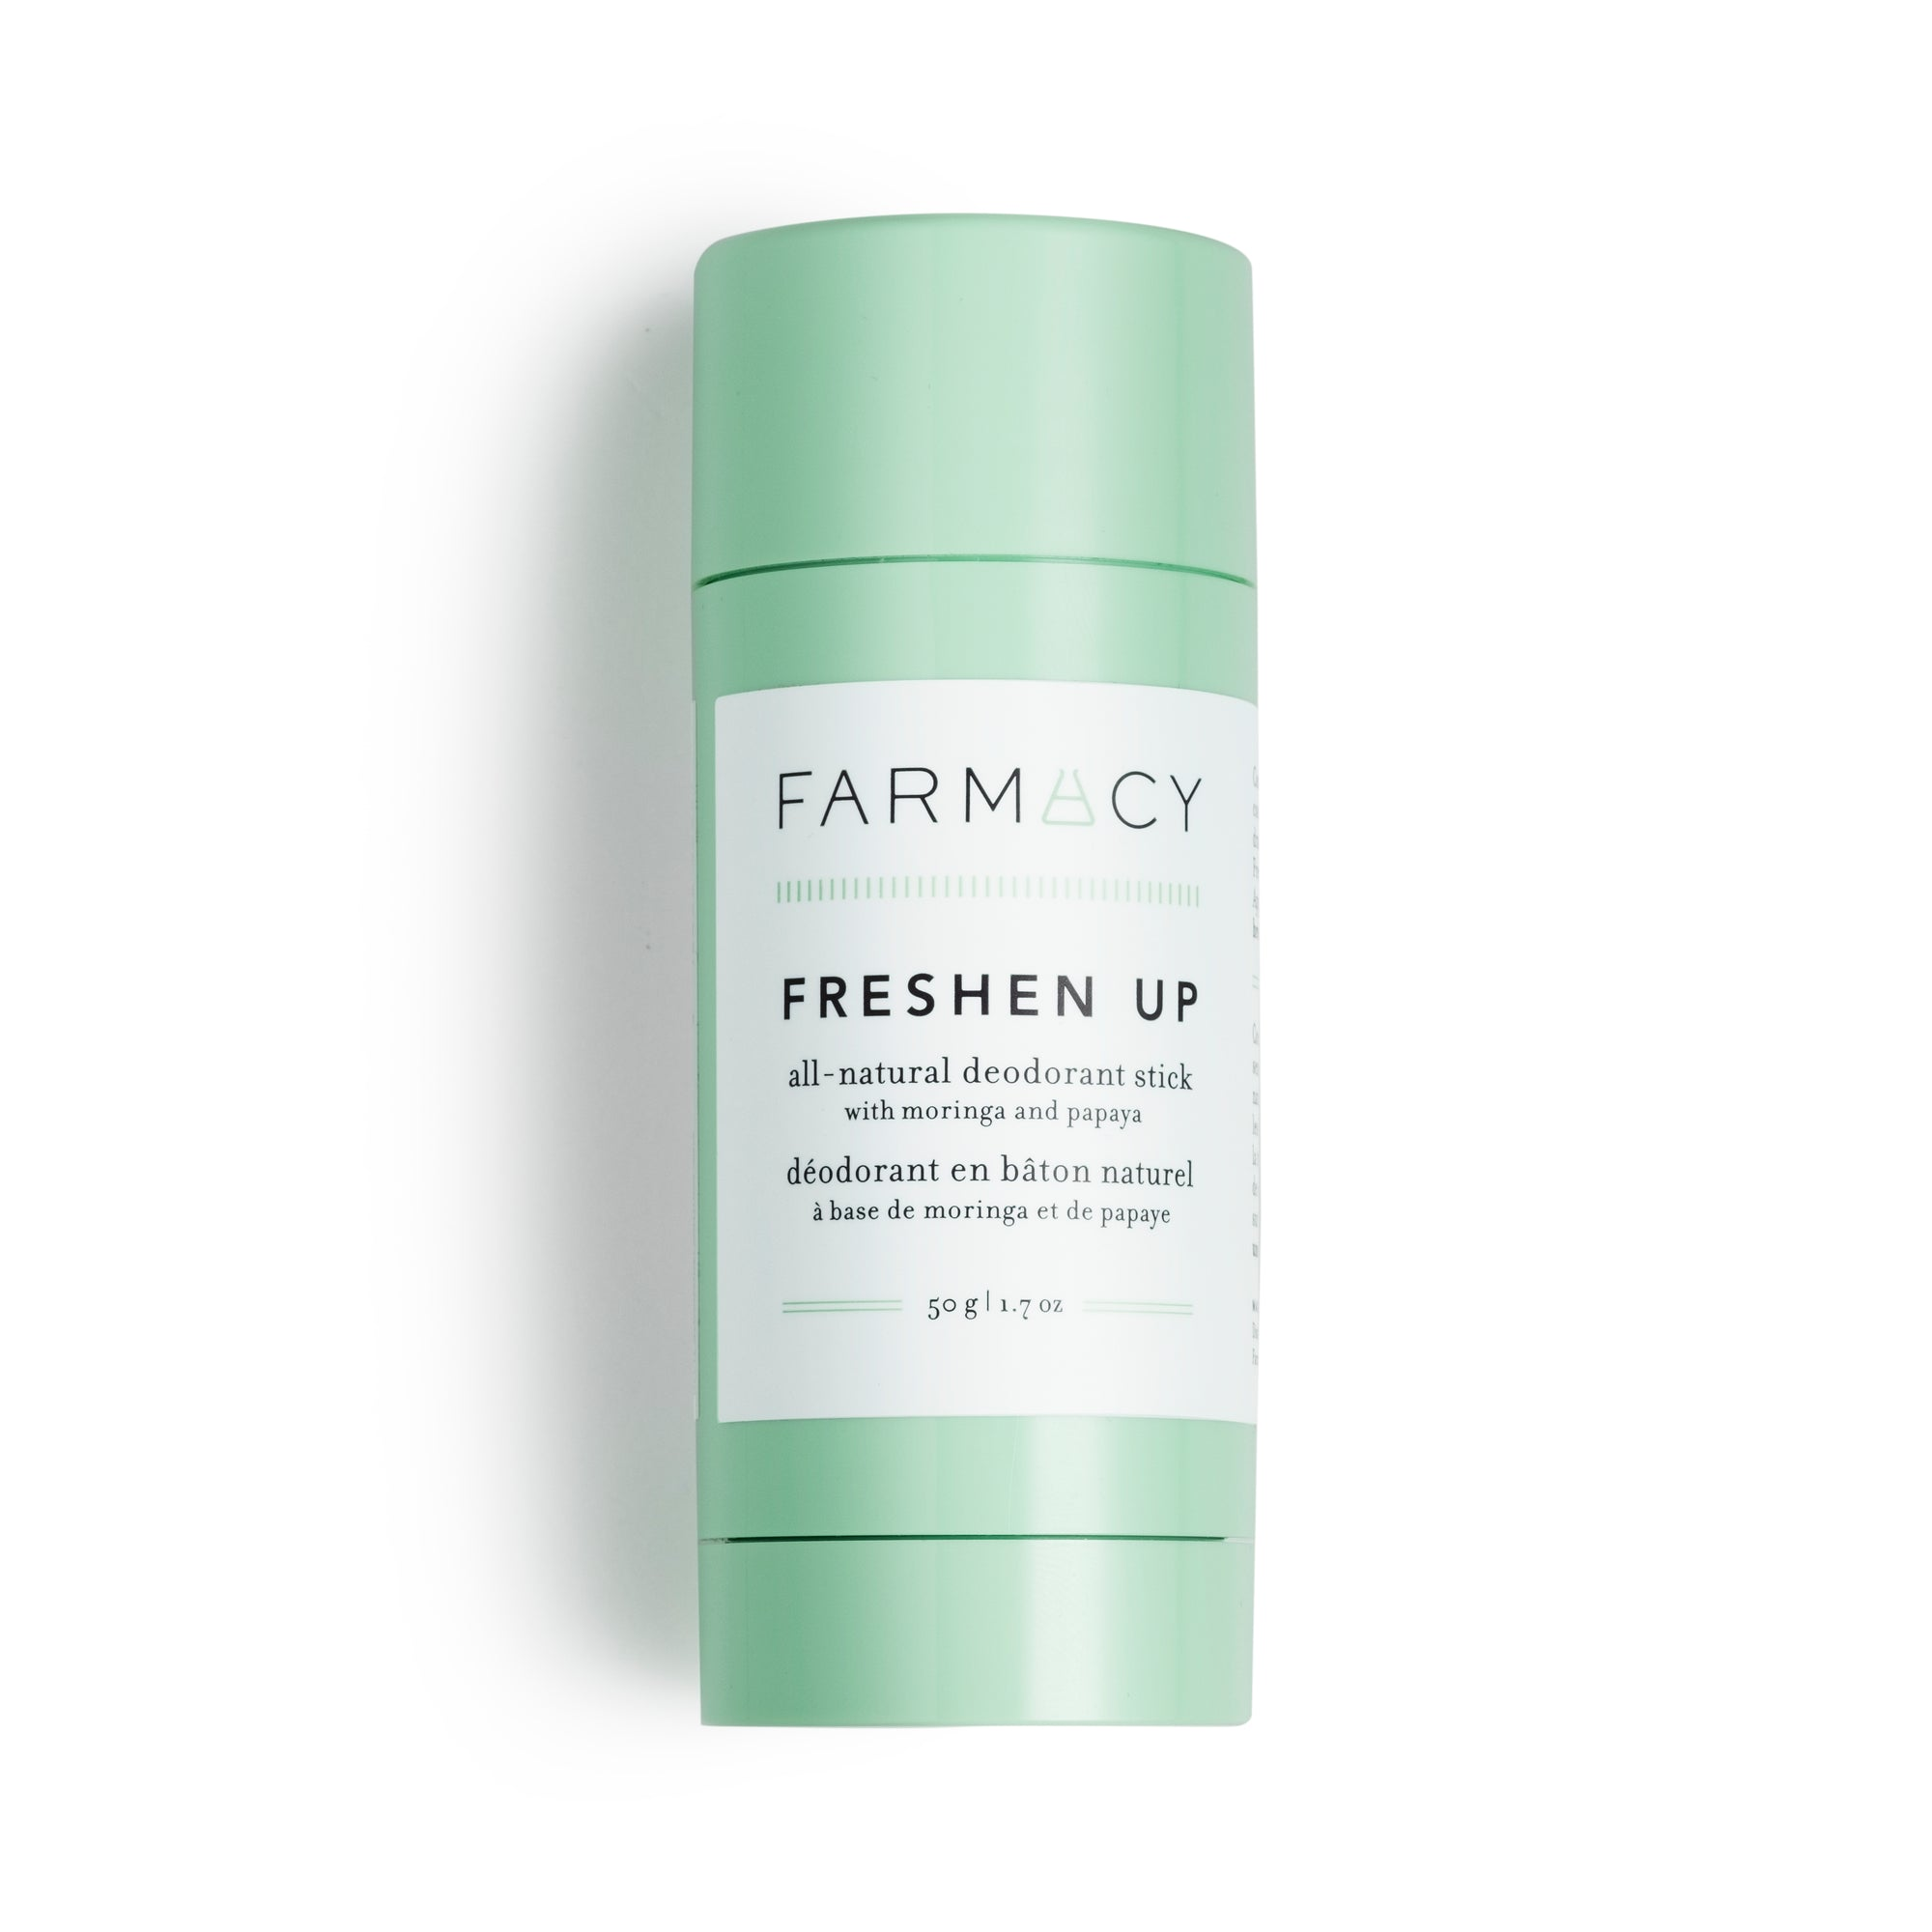 Farmacy Freshen Up Deodorant Stick